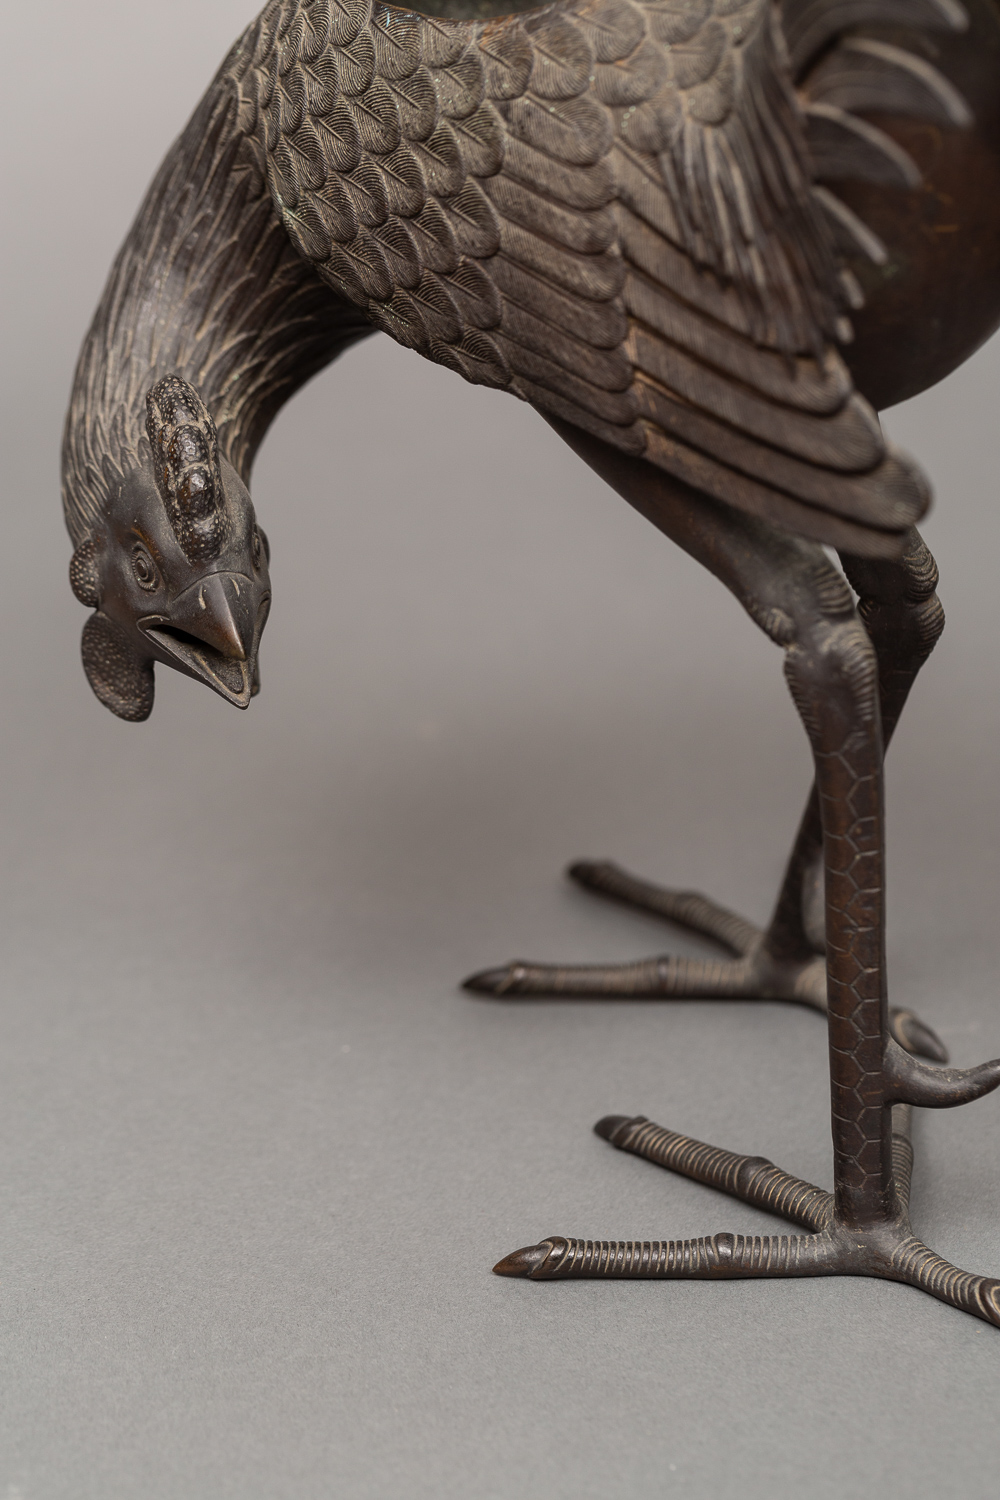 Bronze Koro (Incense Burner) of a Rooster